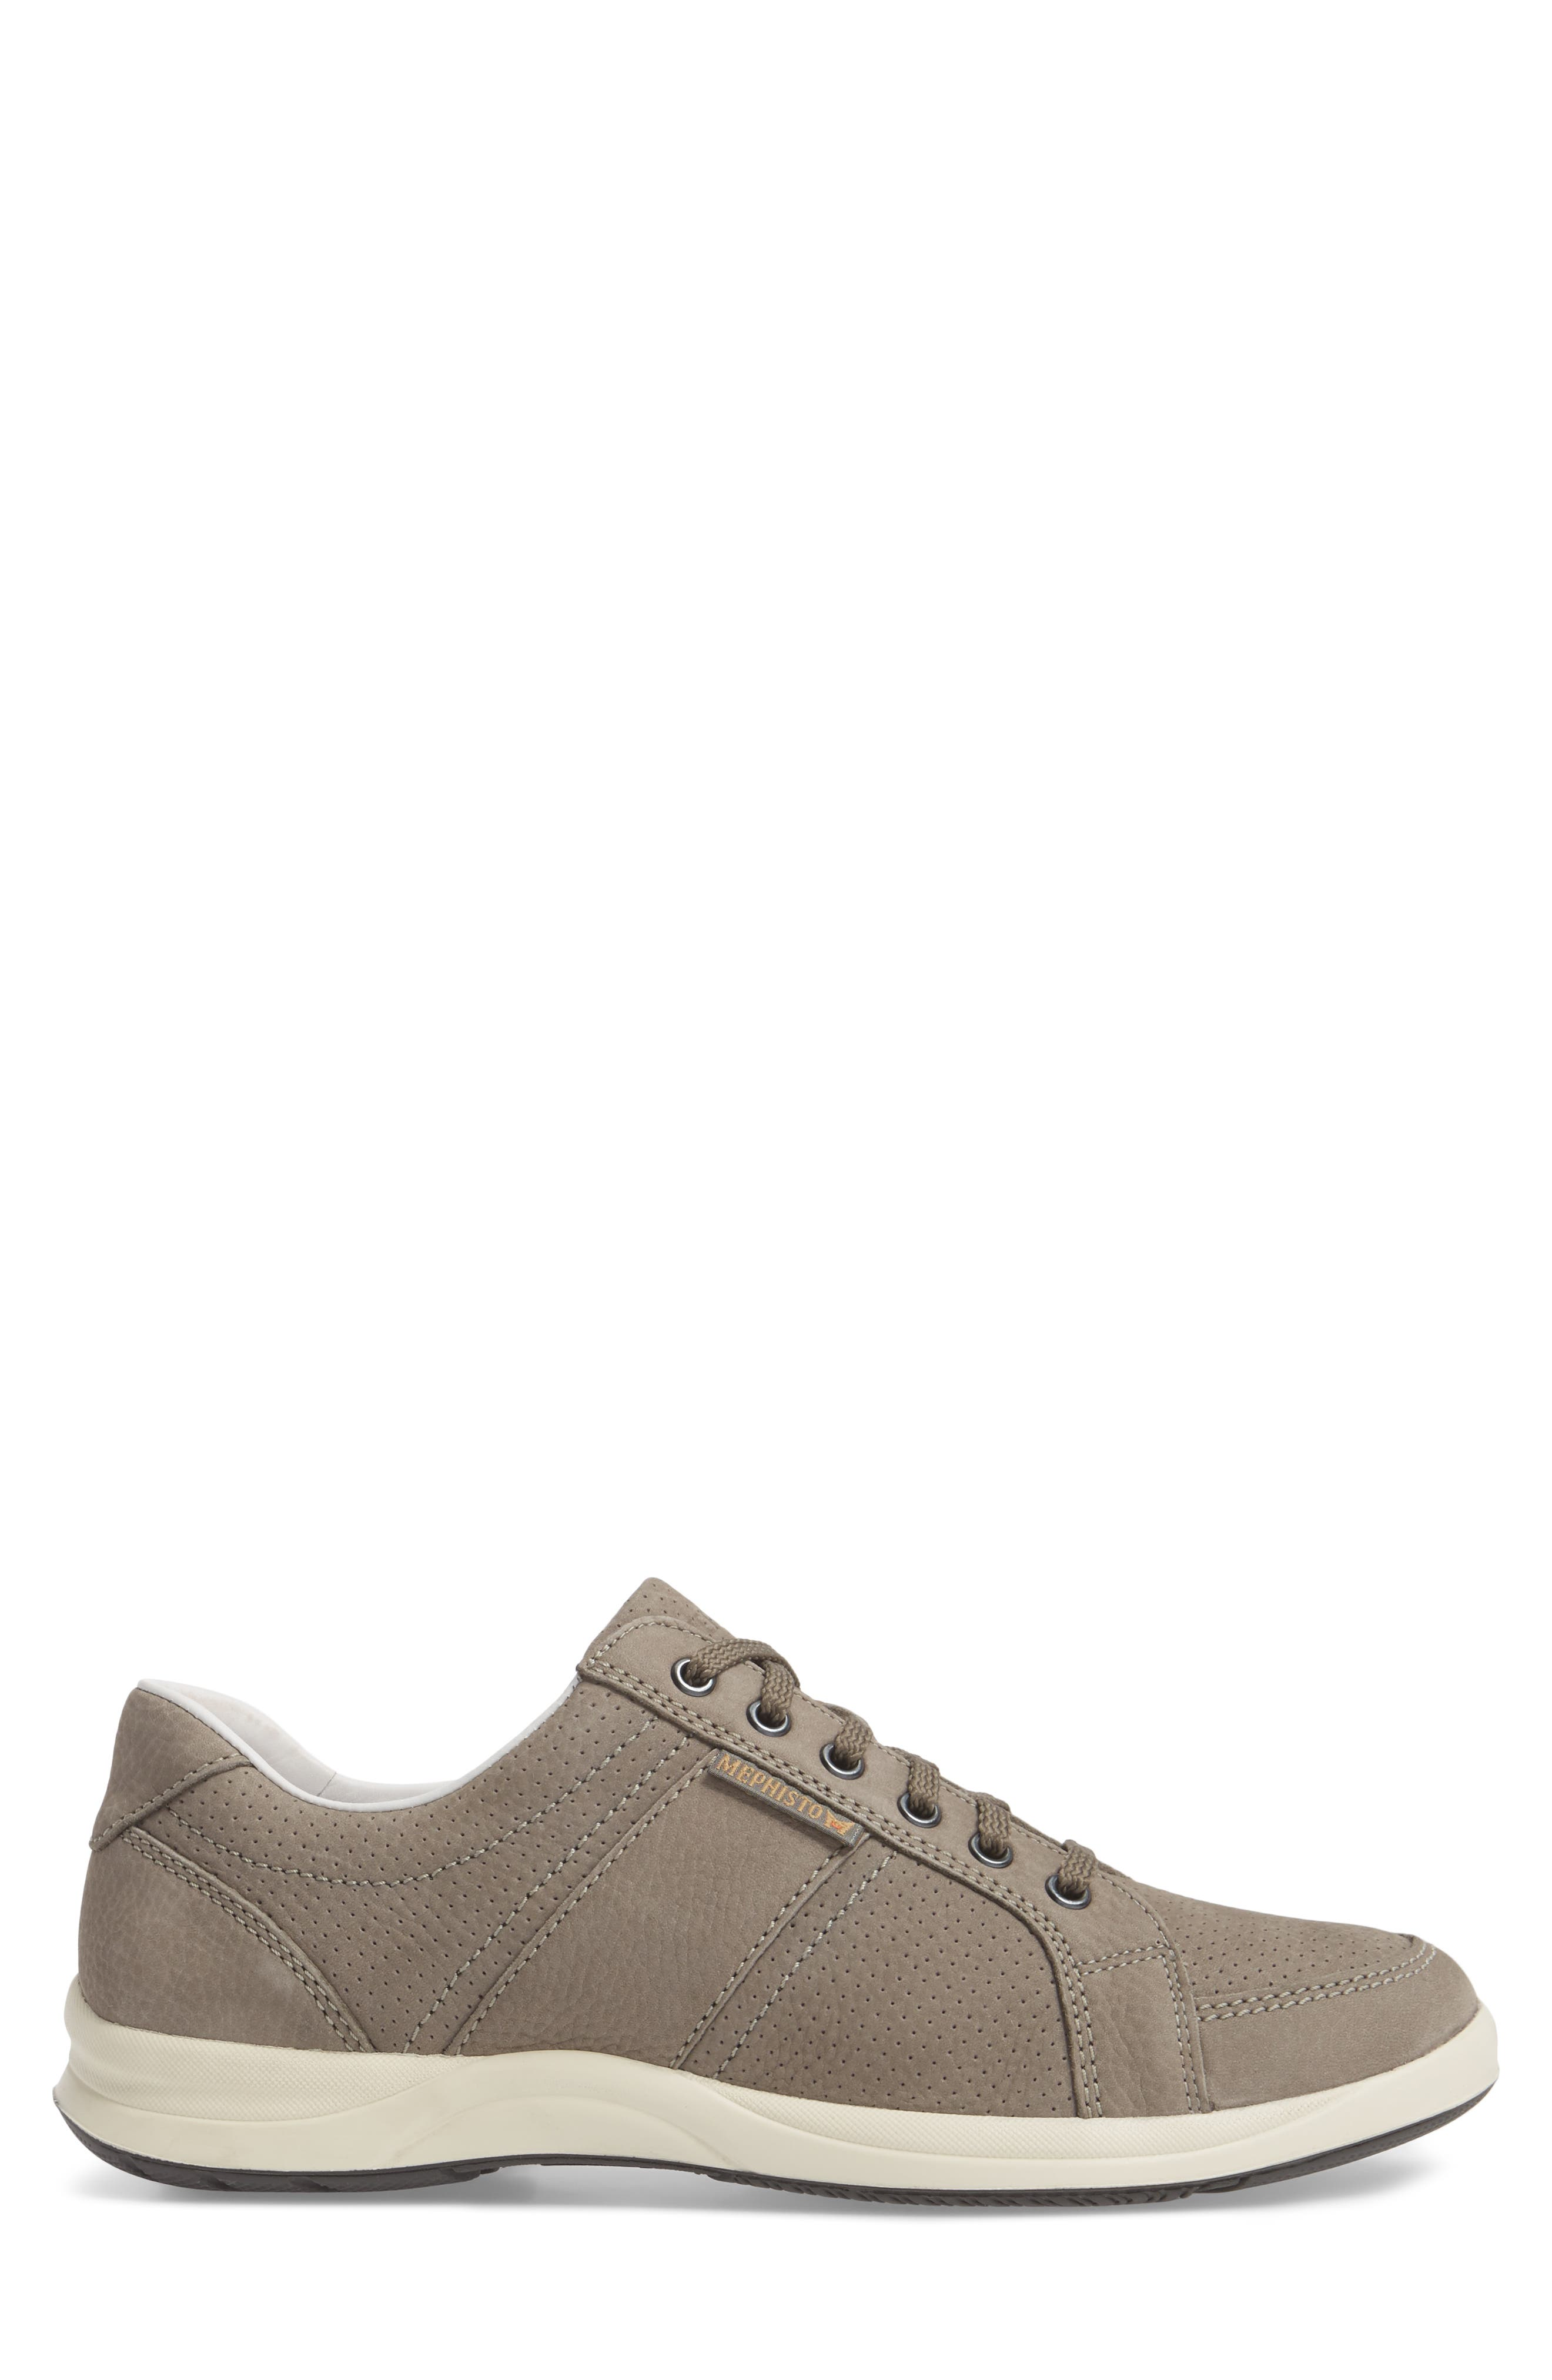 'Hero' Perforated Sneaker,                             Alternate thumbnail 3, color,                             GREY LEATHER